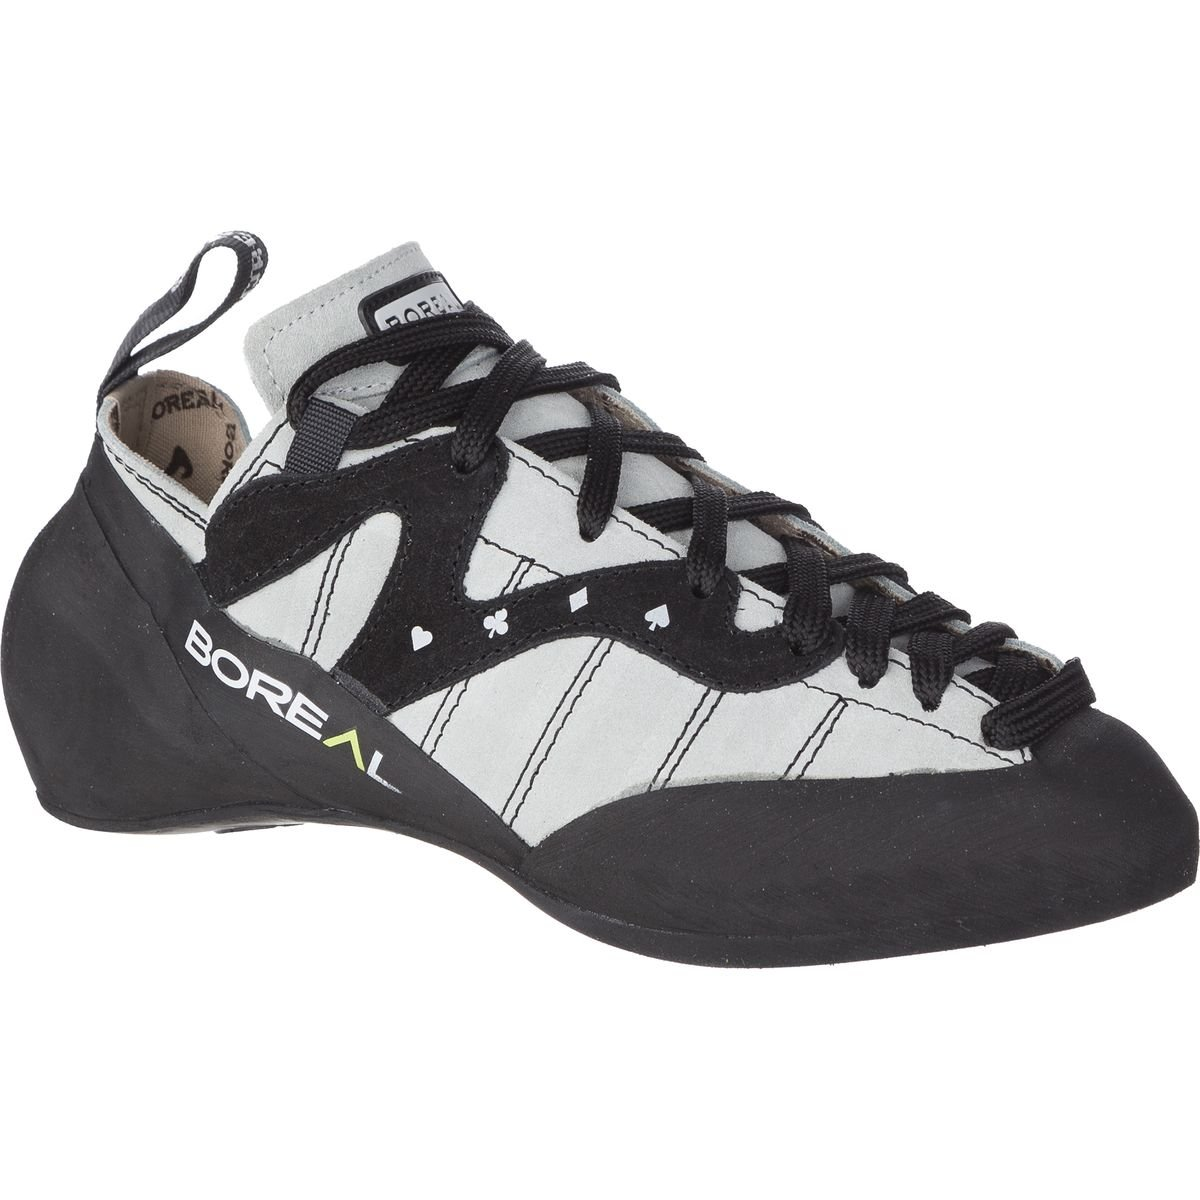 Boreal As/Ace, Zapatos de Escalada Unisex Adulto